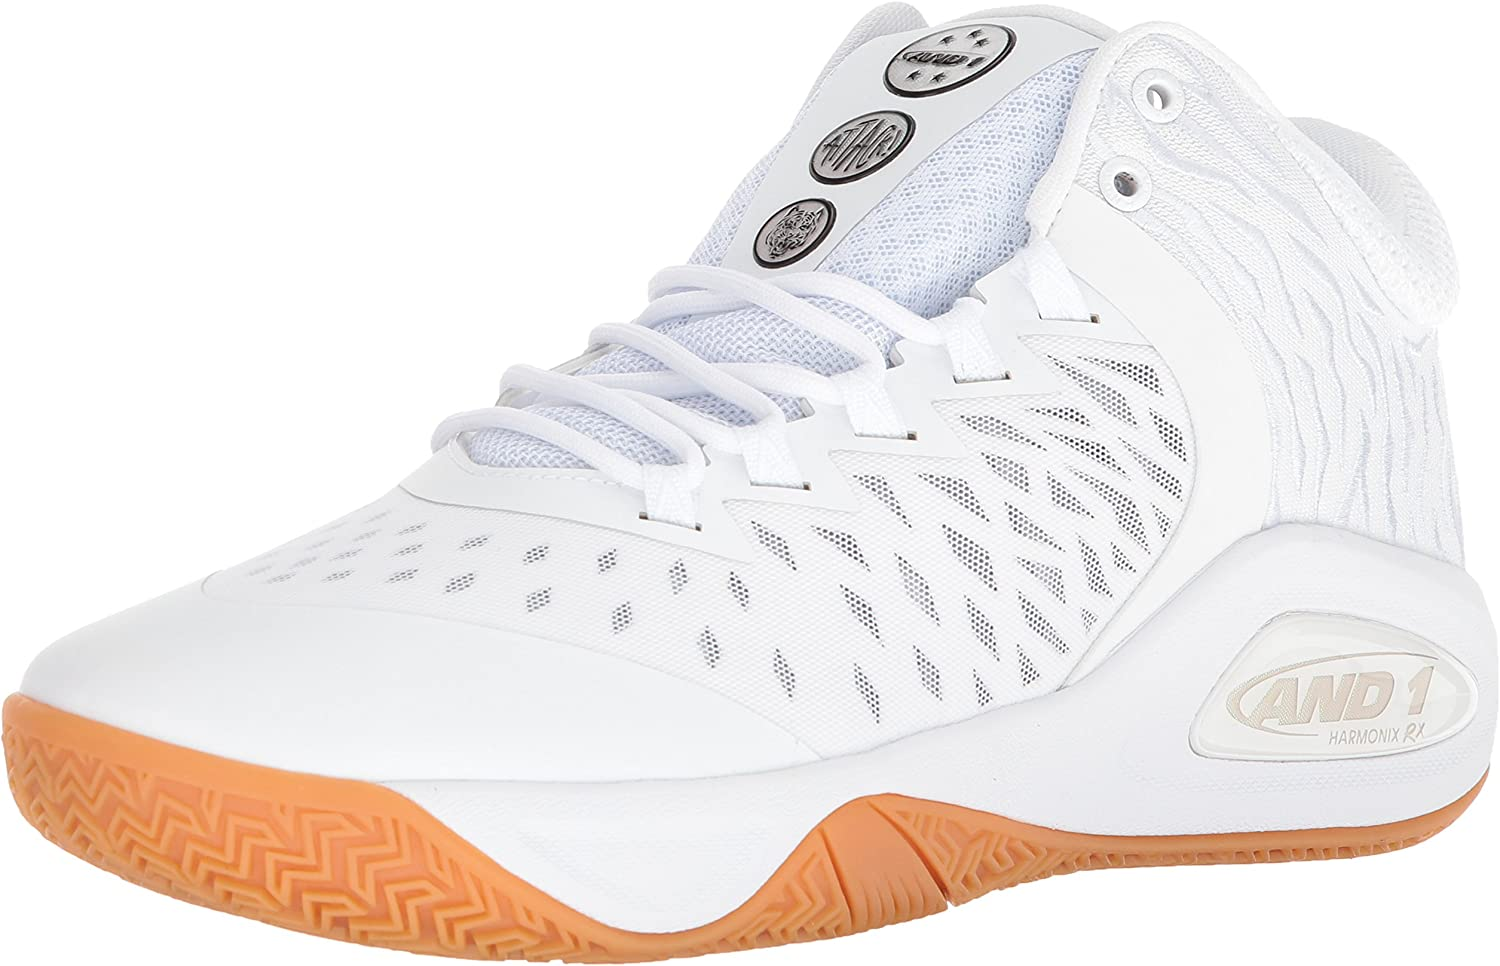 AND1 Men's Attack Mid Basketball shoes